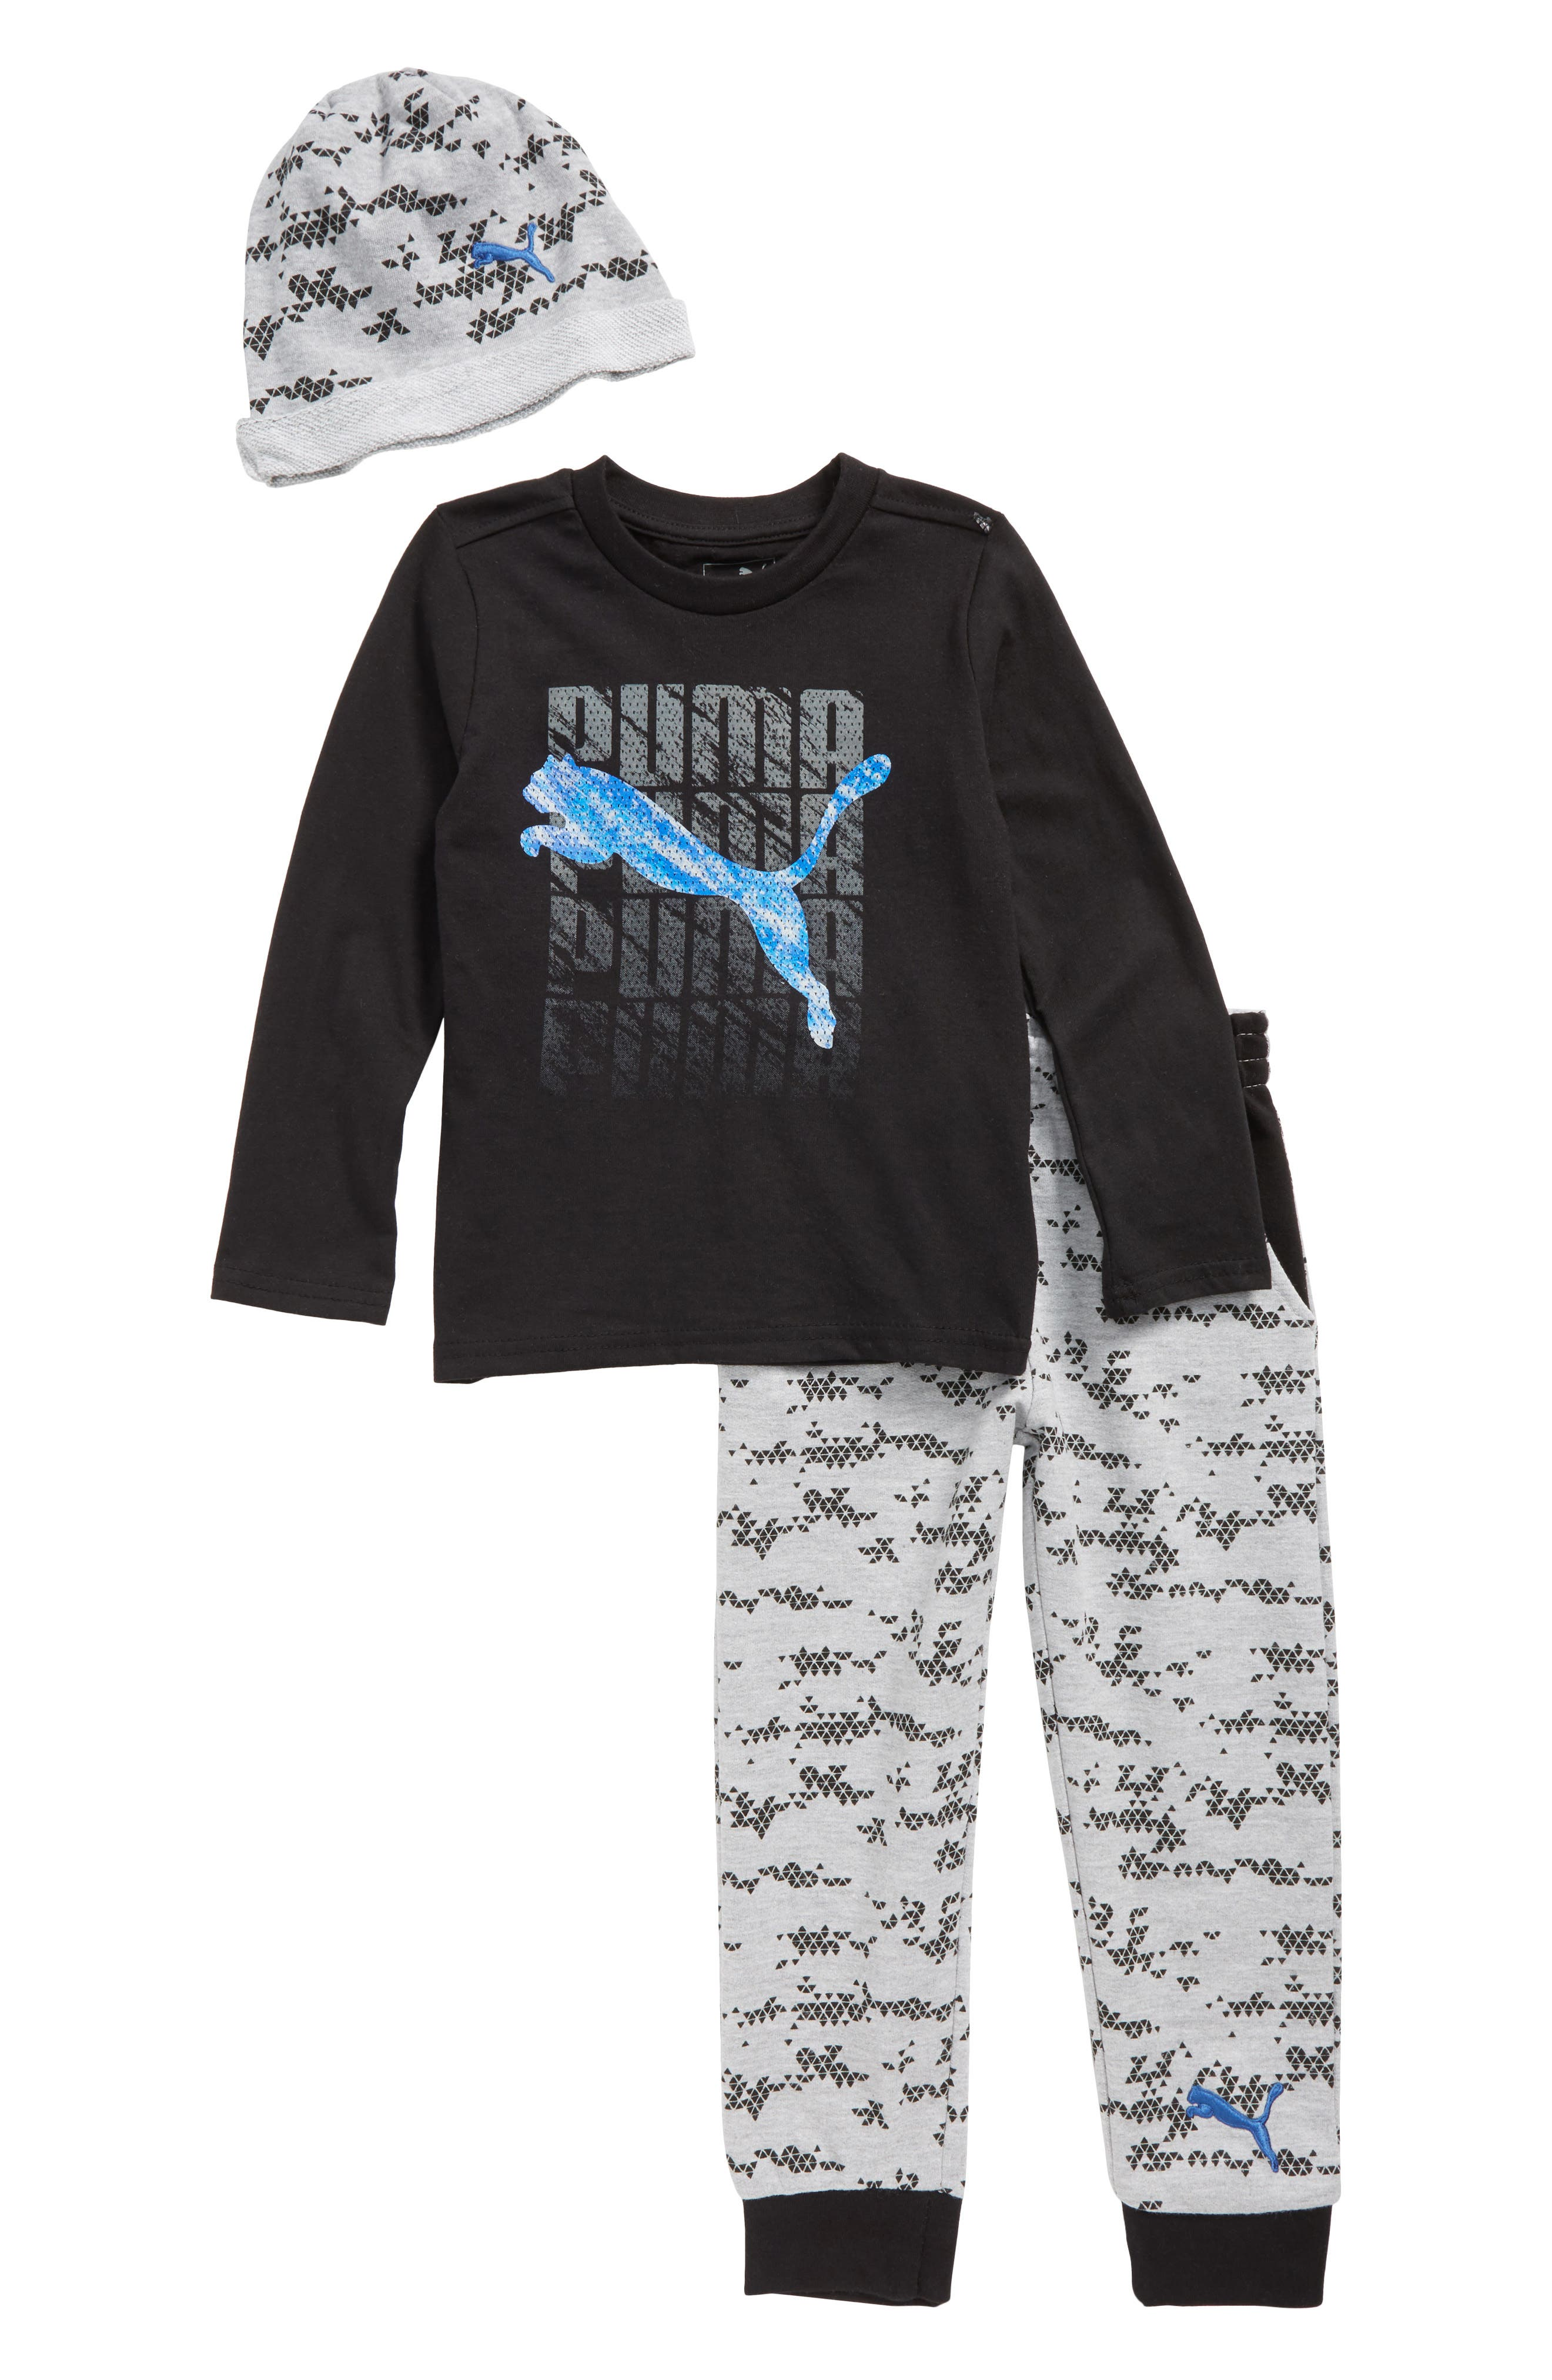 PUMA Logo T-Shirt, Jogger Pants & Beanie Set (Toddler Boys & Little Boys)